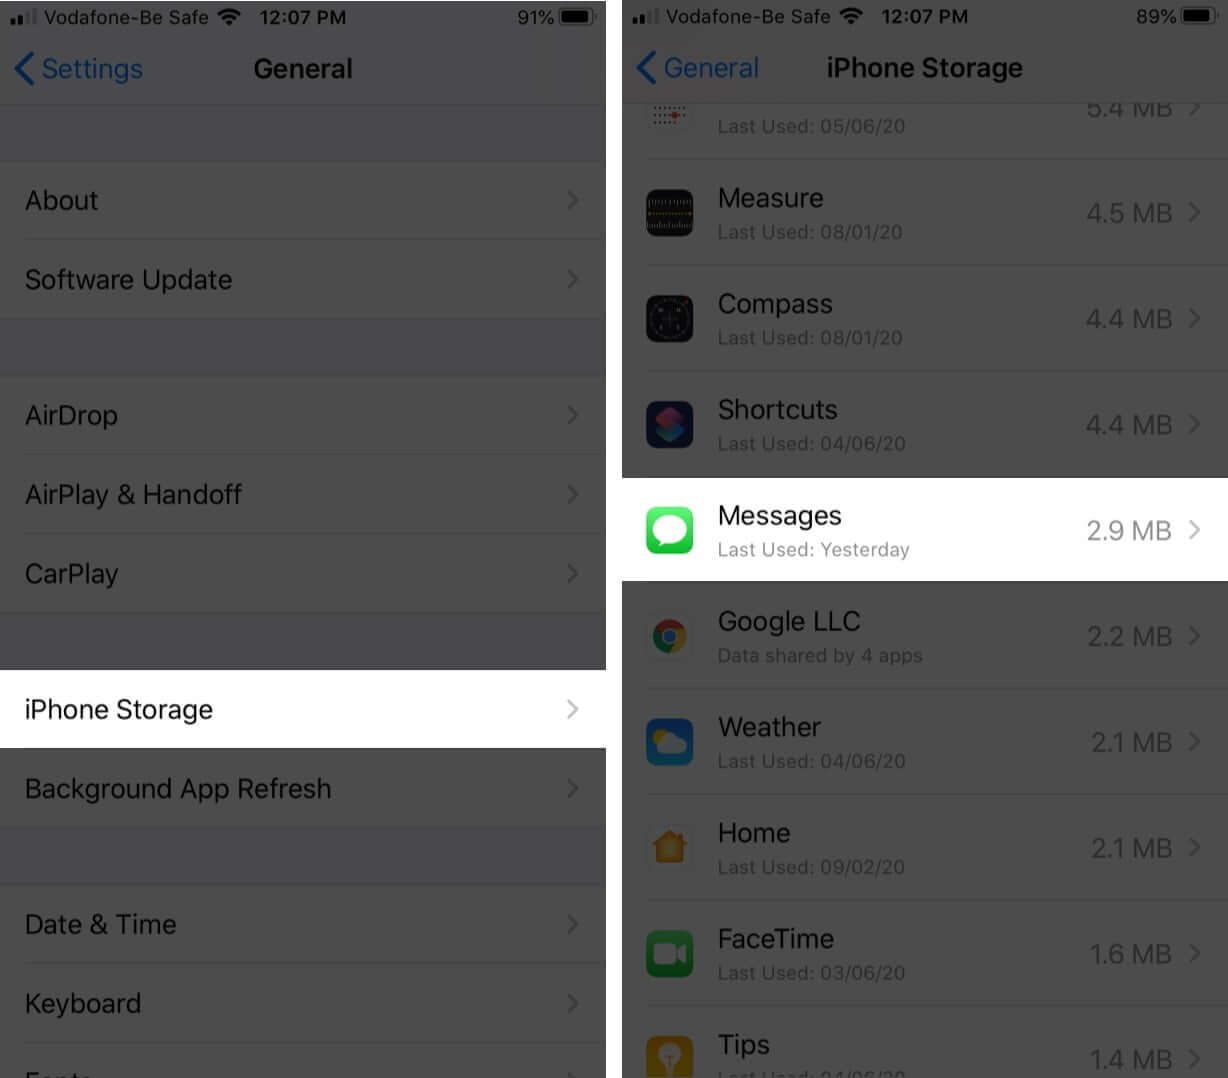 Tap on iPhone Storage and then Tap Messages on iPhone